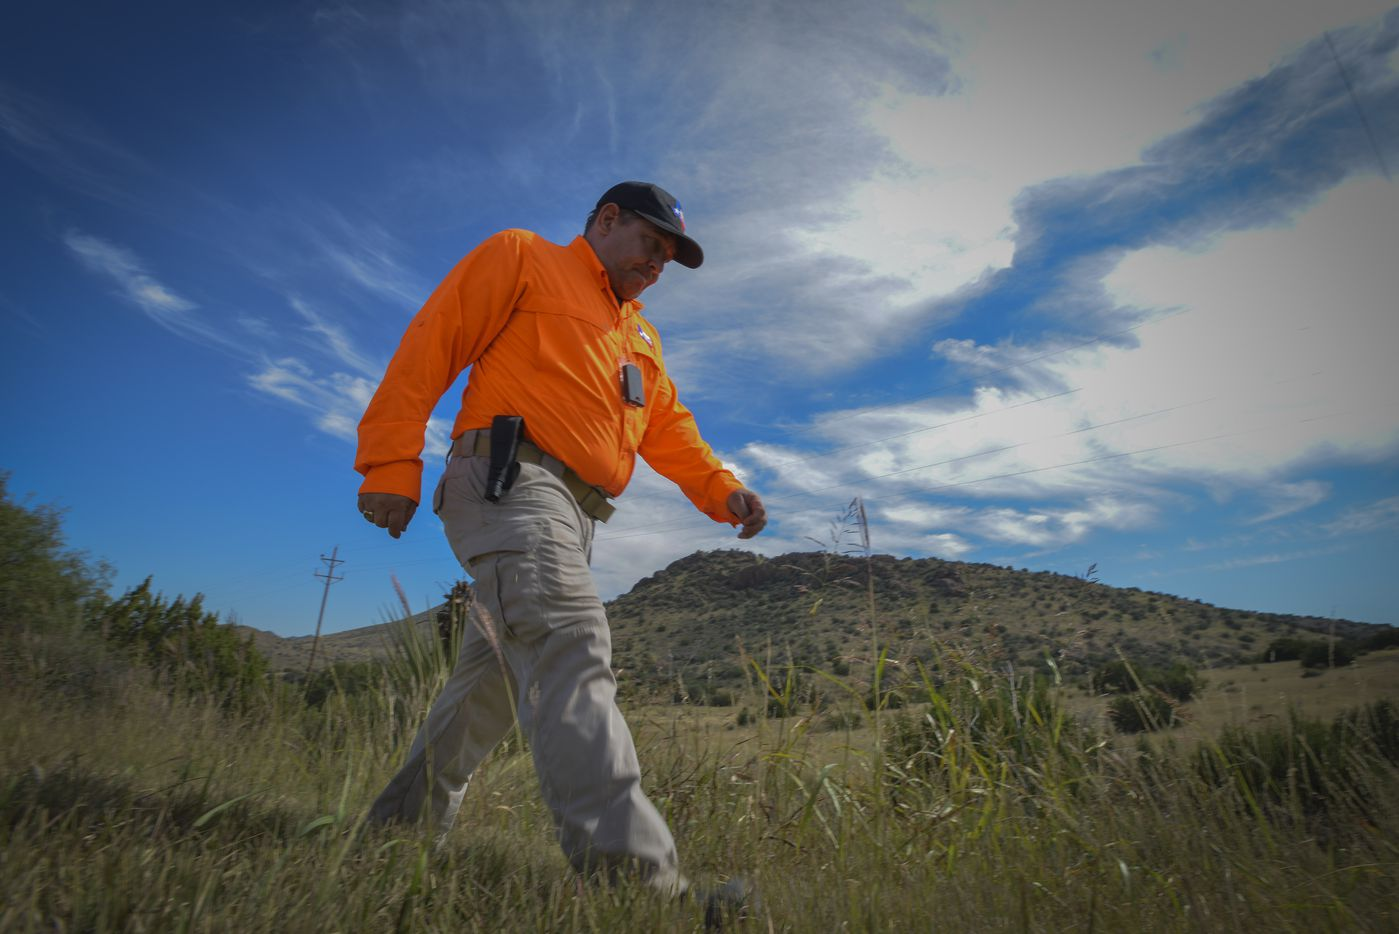 Kelley Janysek, of Texas Search and Rescue searches the rugged Brewster County terrain on Saturday, Oct. 22, 2016 for Zuzu Verk.